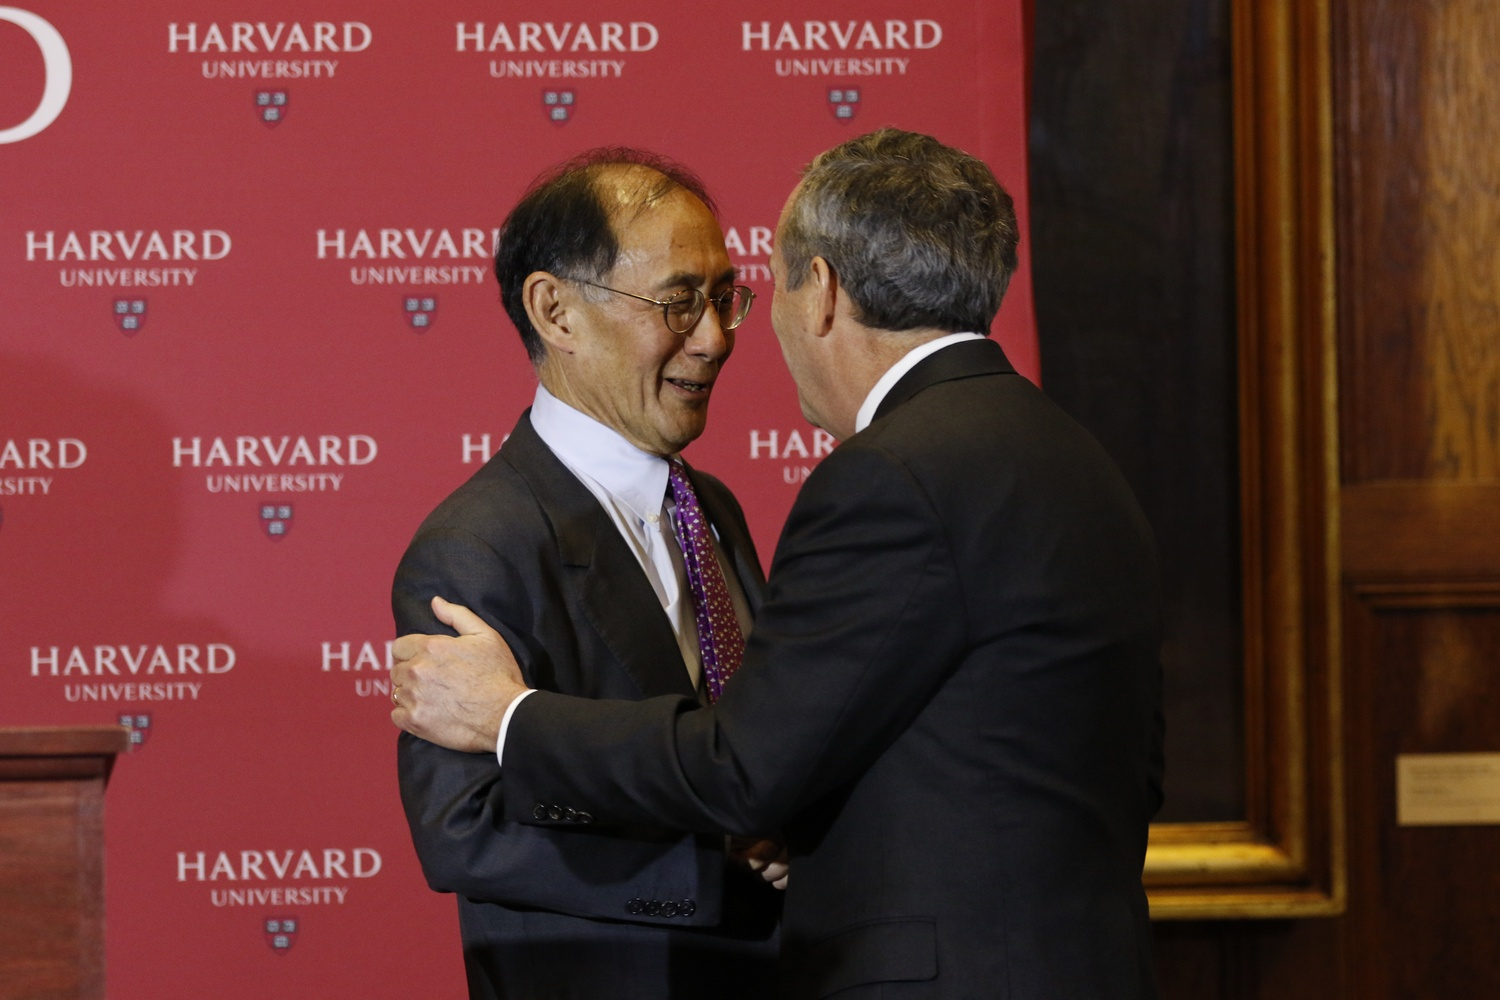 Harvard President-elect Lawrence S. Bacow and Senior Fellow of the Harvard Corporation William F. Lee '72 embrace at the press conference announcing Bacow's selection.